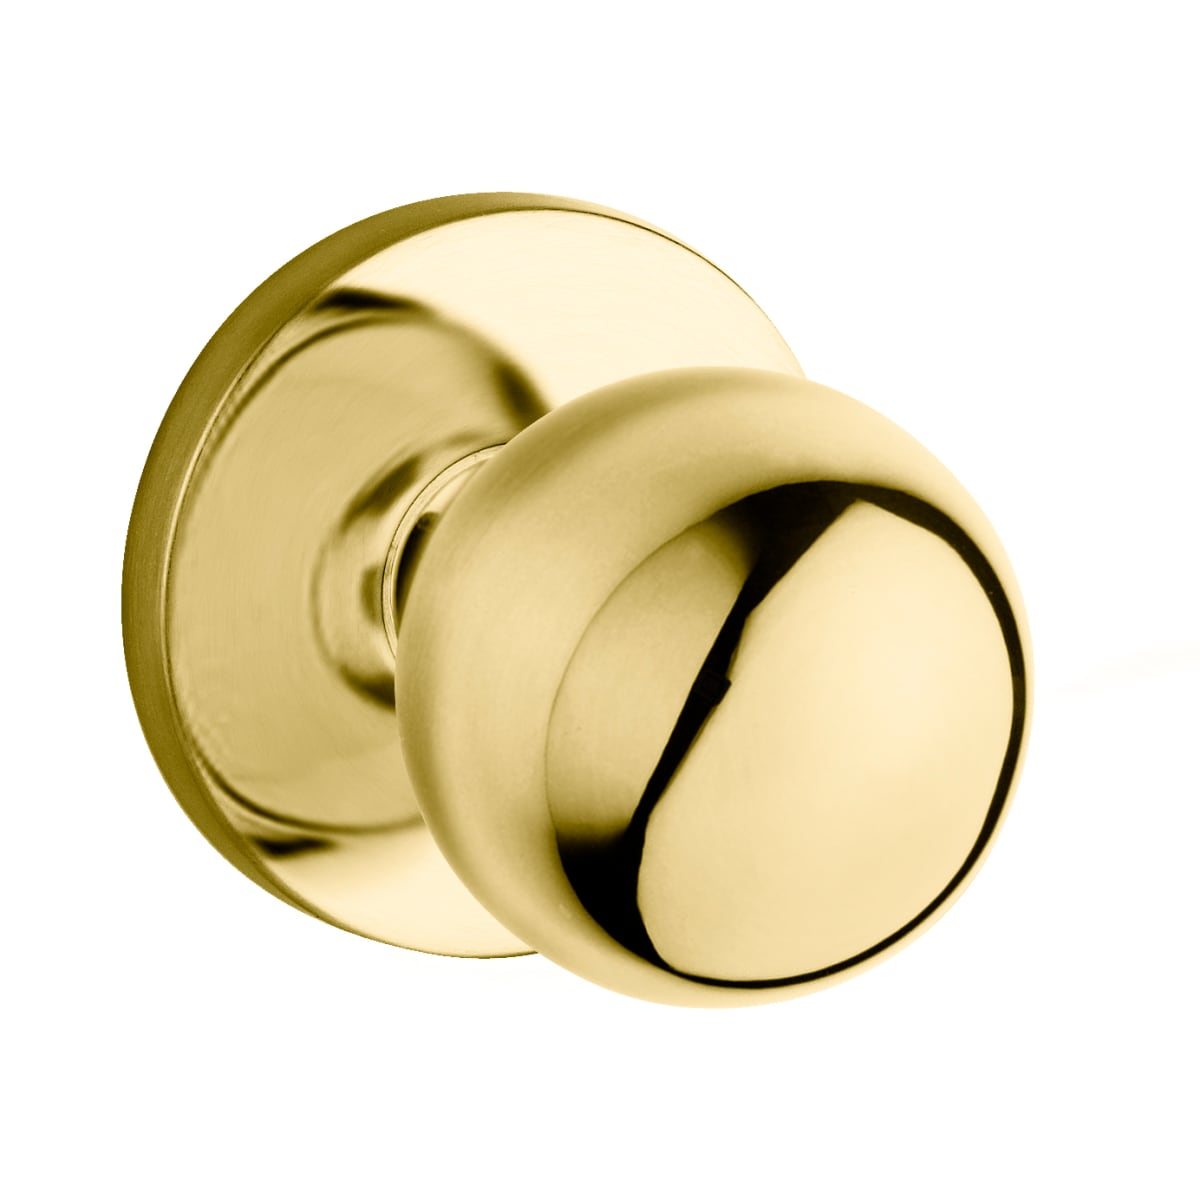 Baldwin 5041 Style Privacy Door Knob Set with choice of Medium Rosette from the Estate Collection